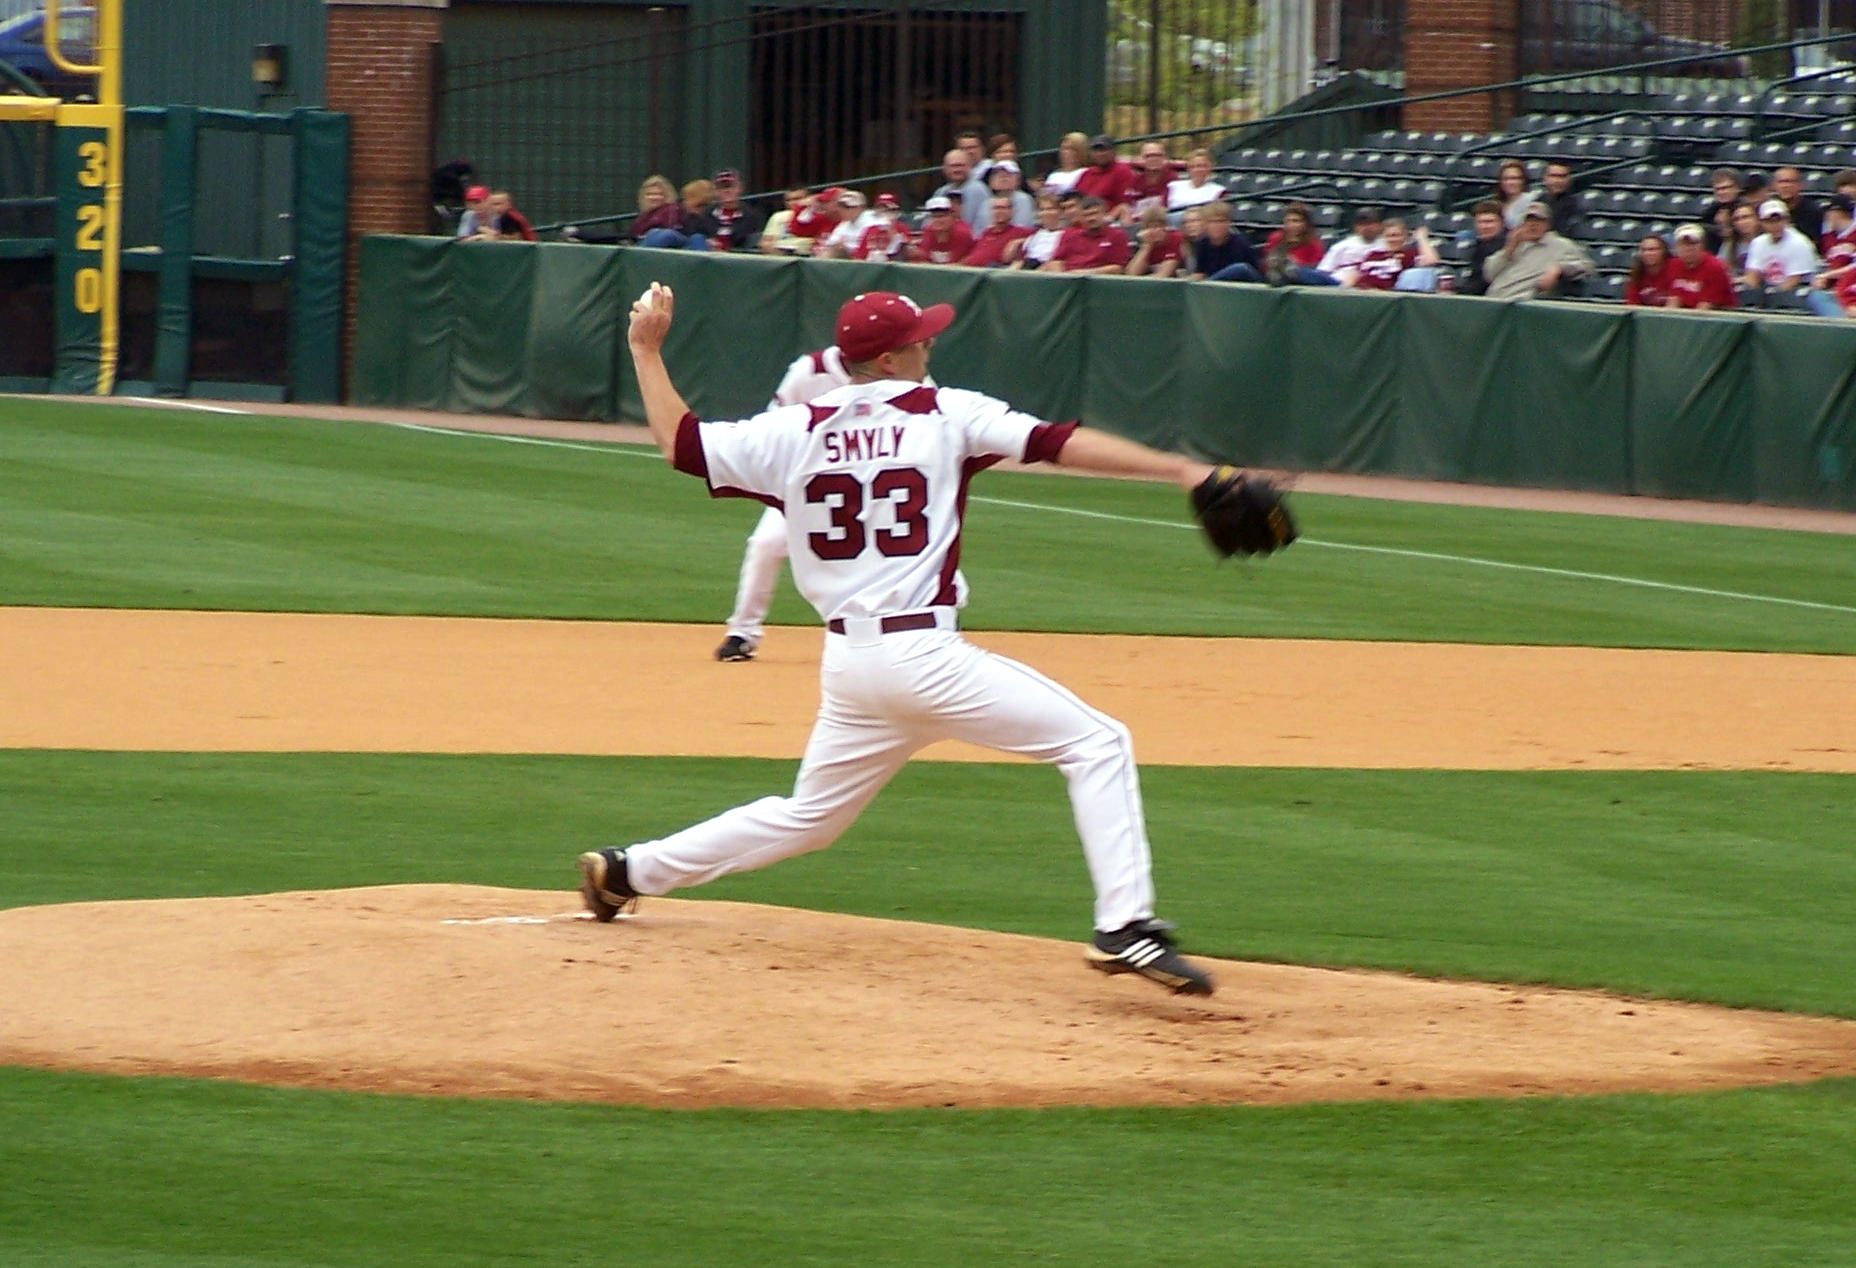 Arkansas Razorbacks baseball team